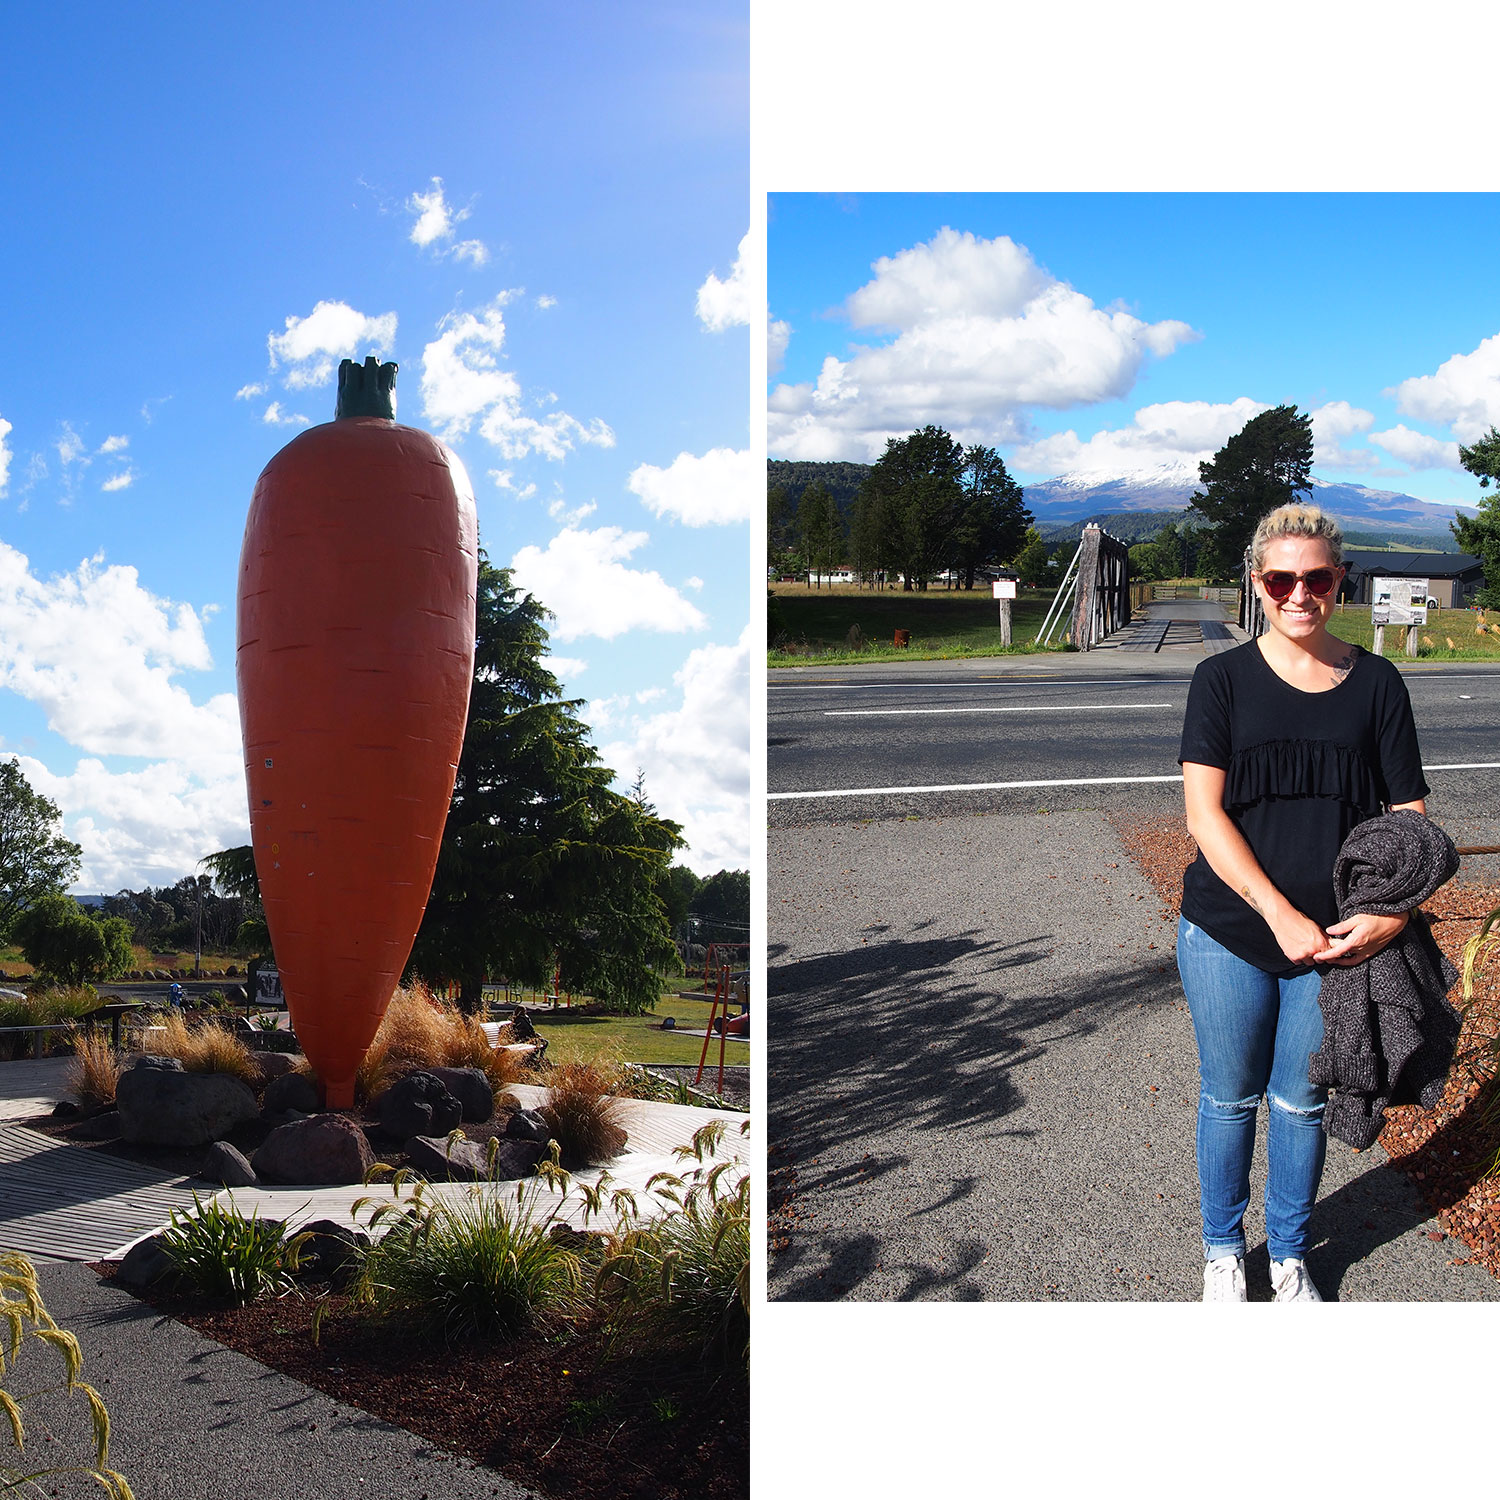 Visiting the infamous carrot in Ohakune! Yes, those are ripped jeans...